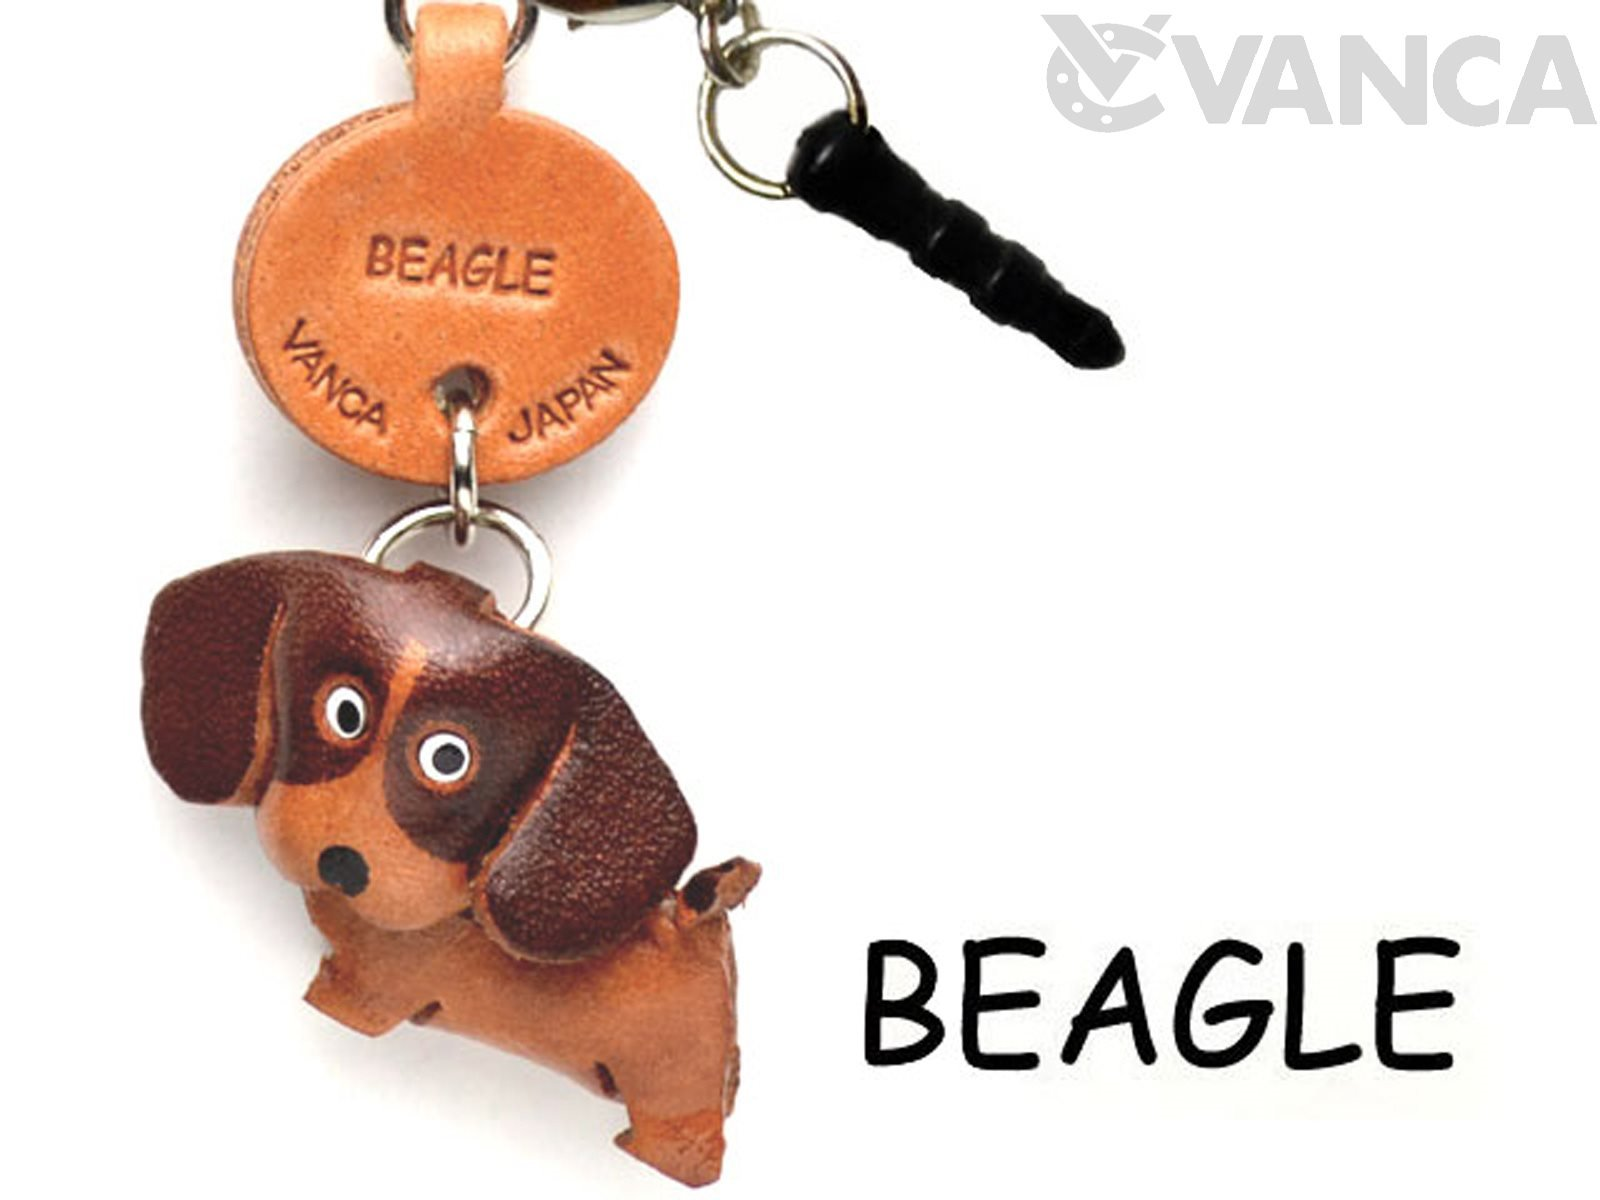 Beagle Leather Dog Earphone Jack Accessory / Dust Plug / Ear Cap / Ear Jack *VANCA* Made in Japan #47704